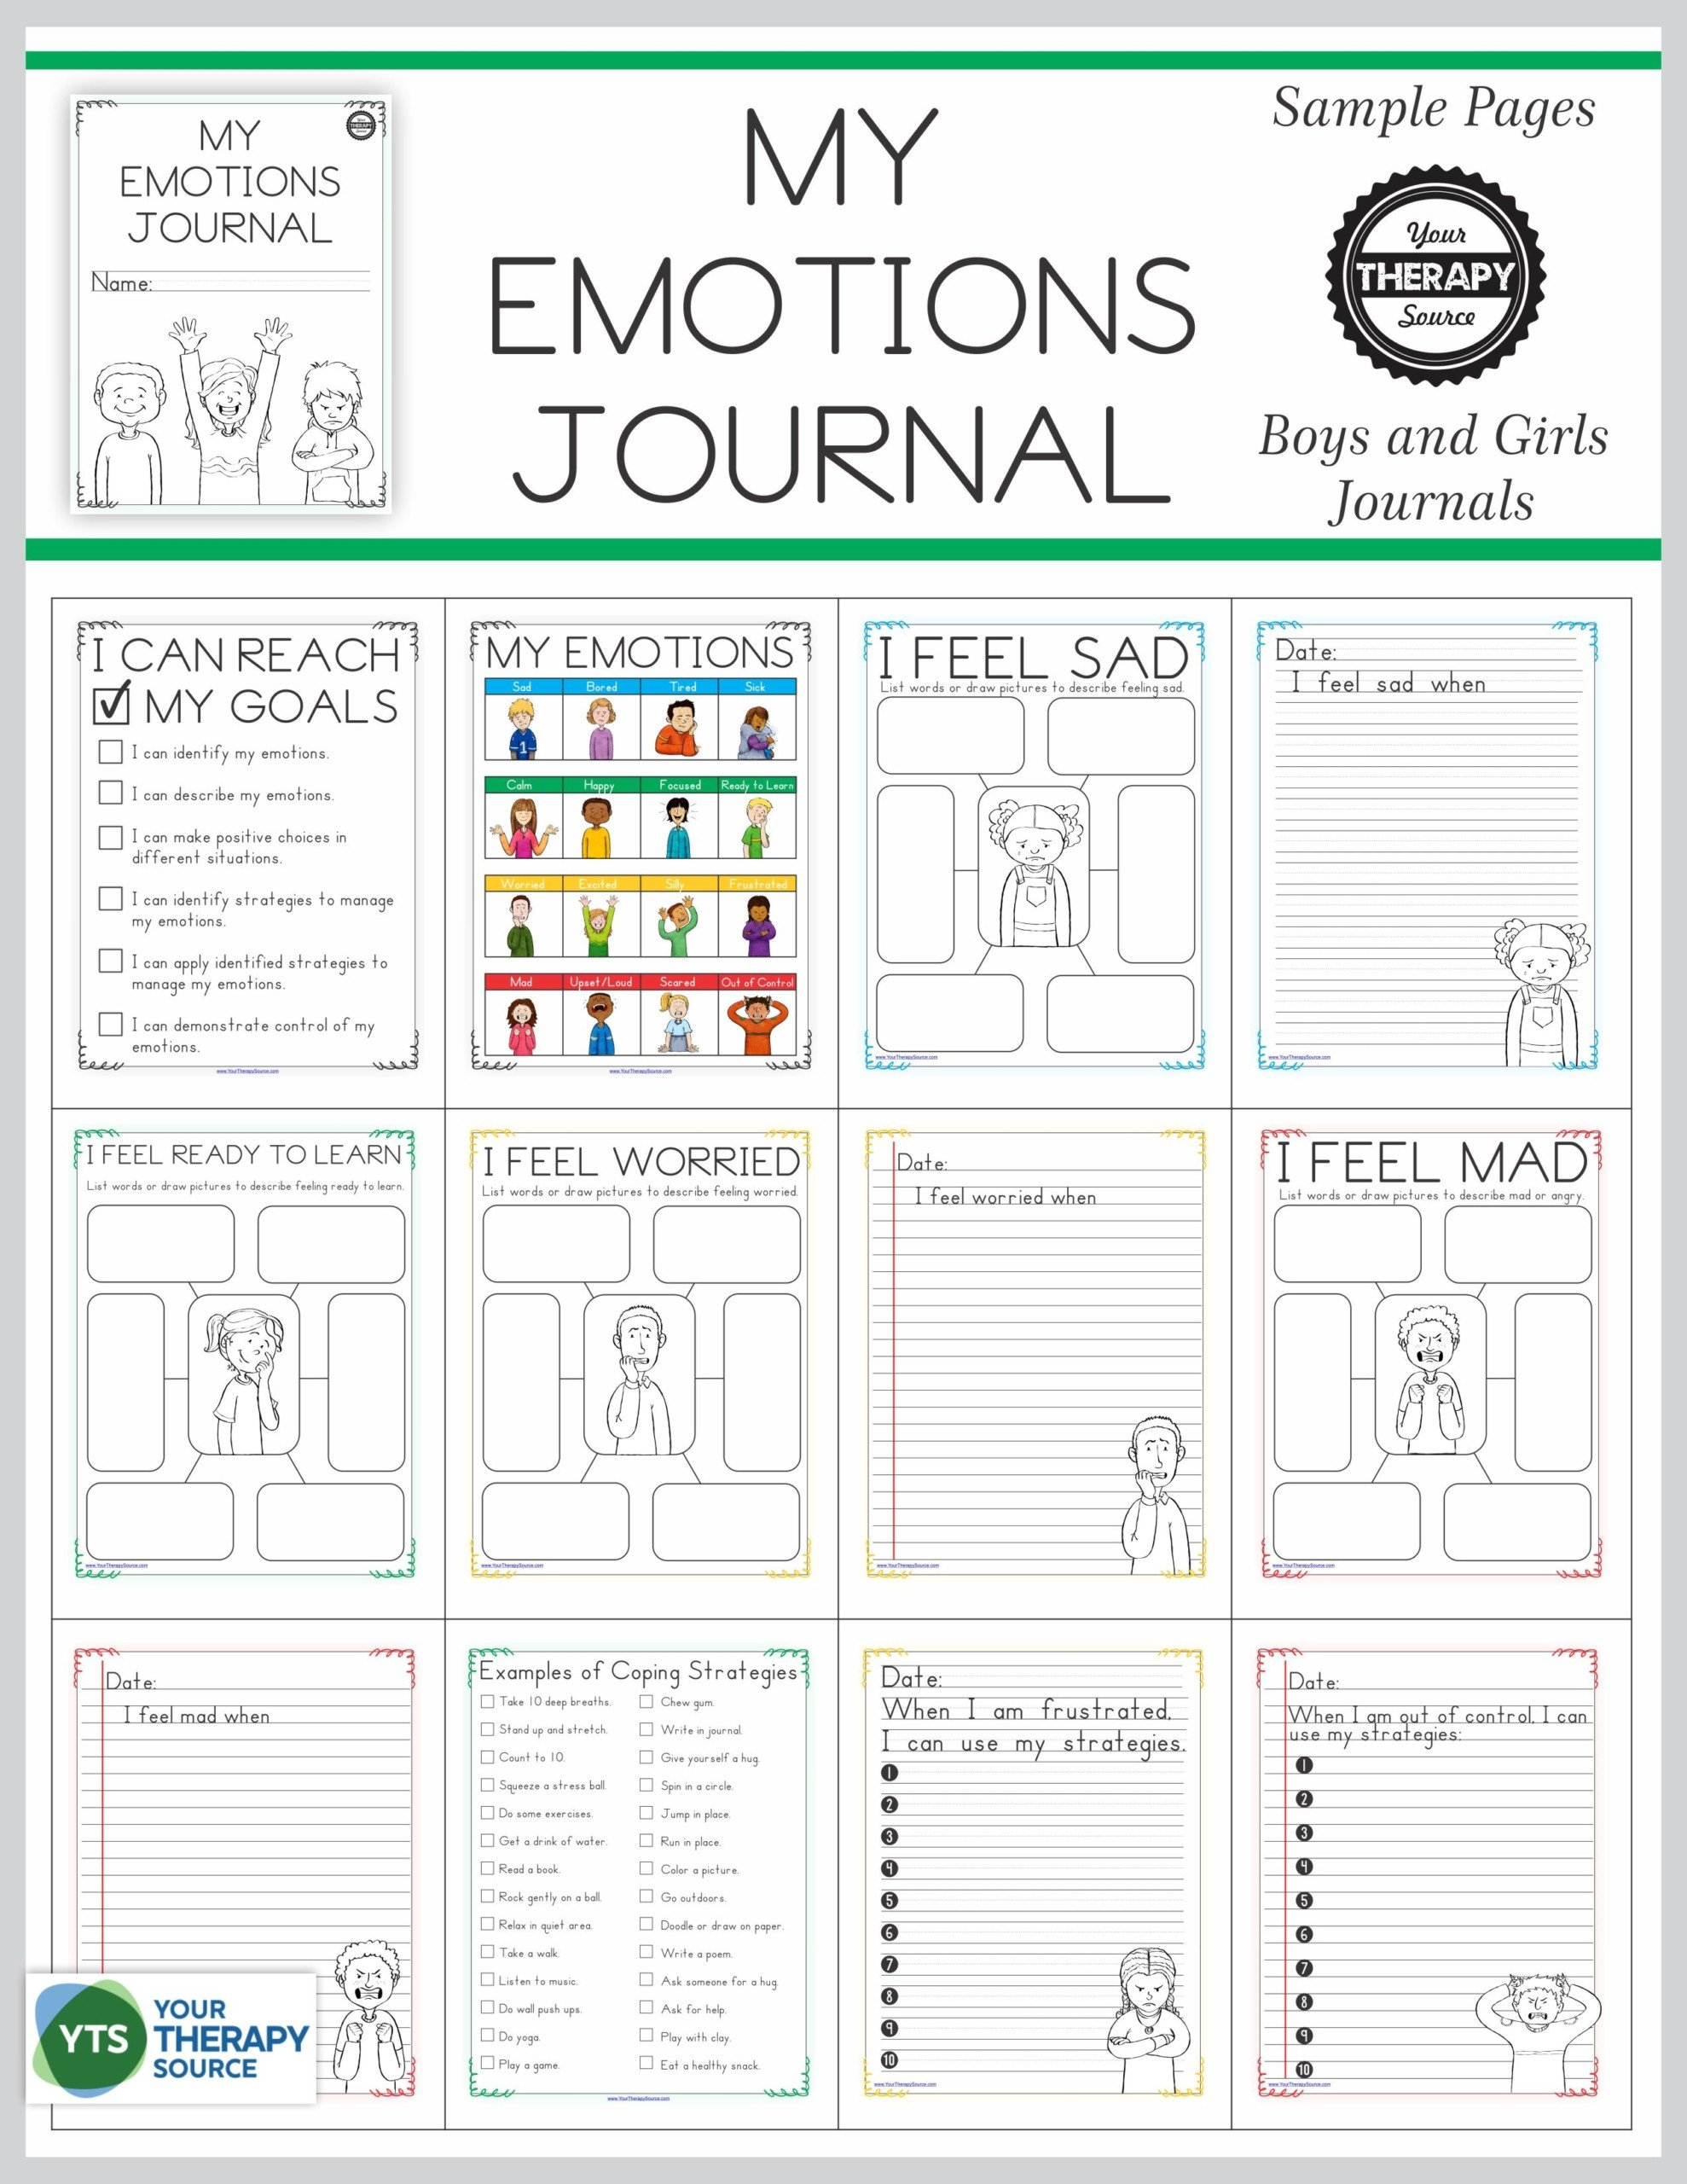 Life Skills Worksheets Pdf Emotional Regulation Worksheets for Boys and Girls